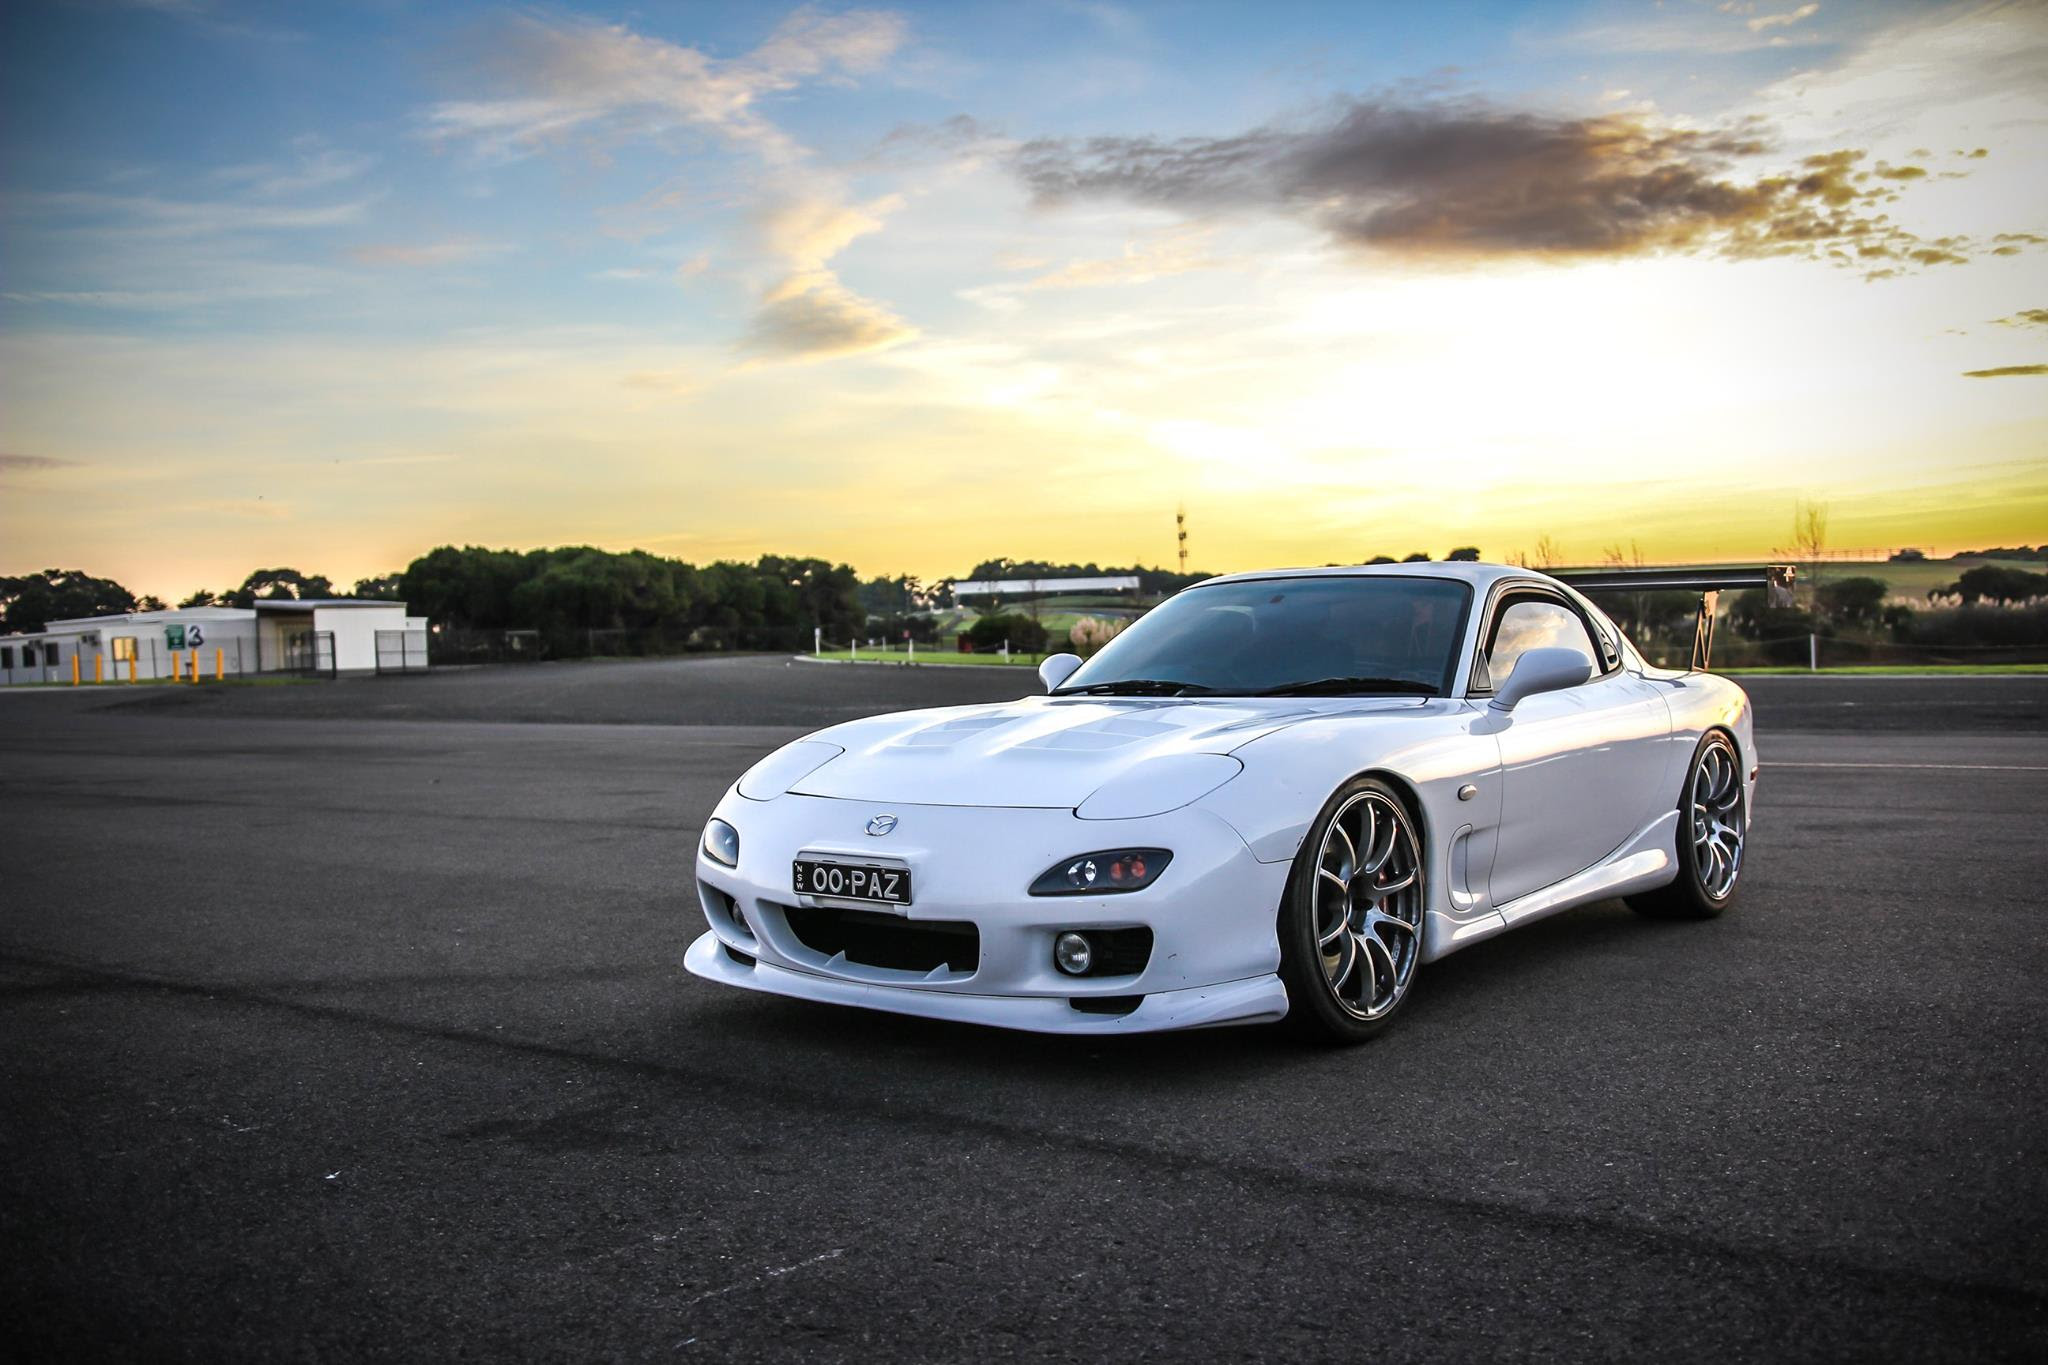 Mazda RX-7 with a Turbo K20 Update - engineswapdepot.com